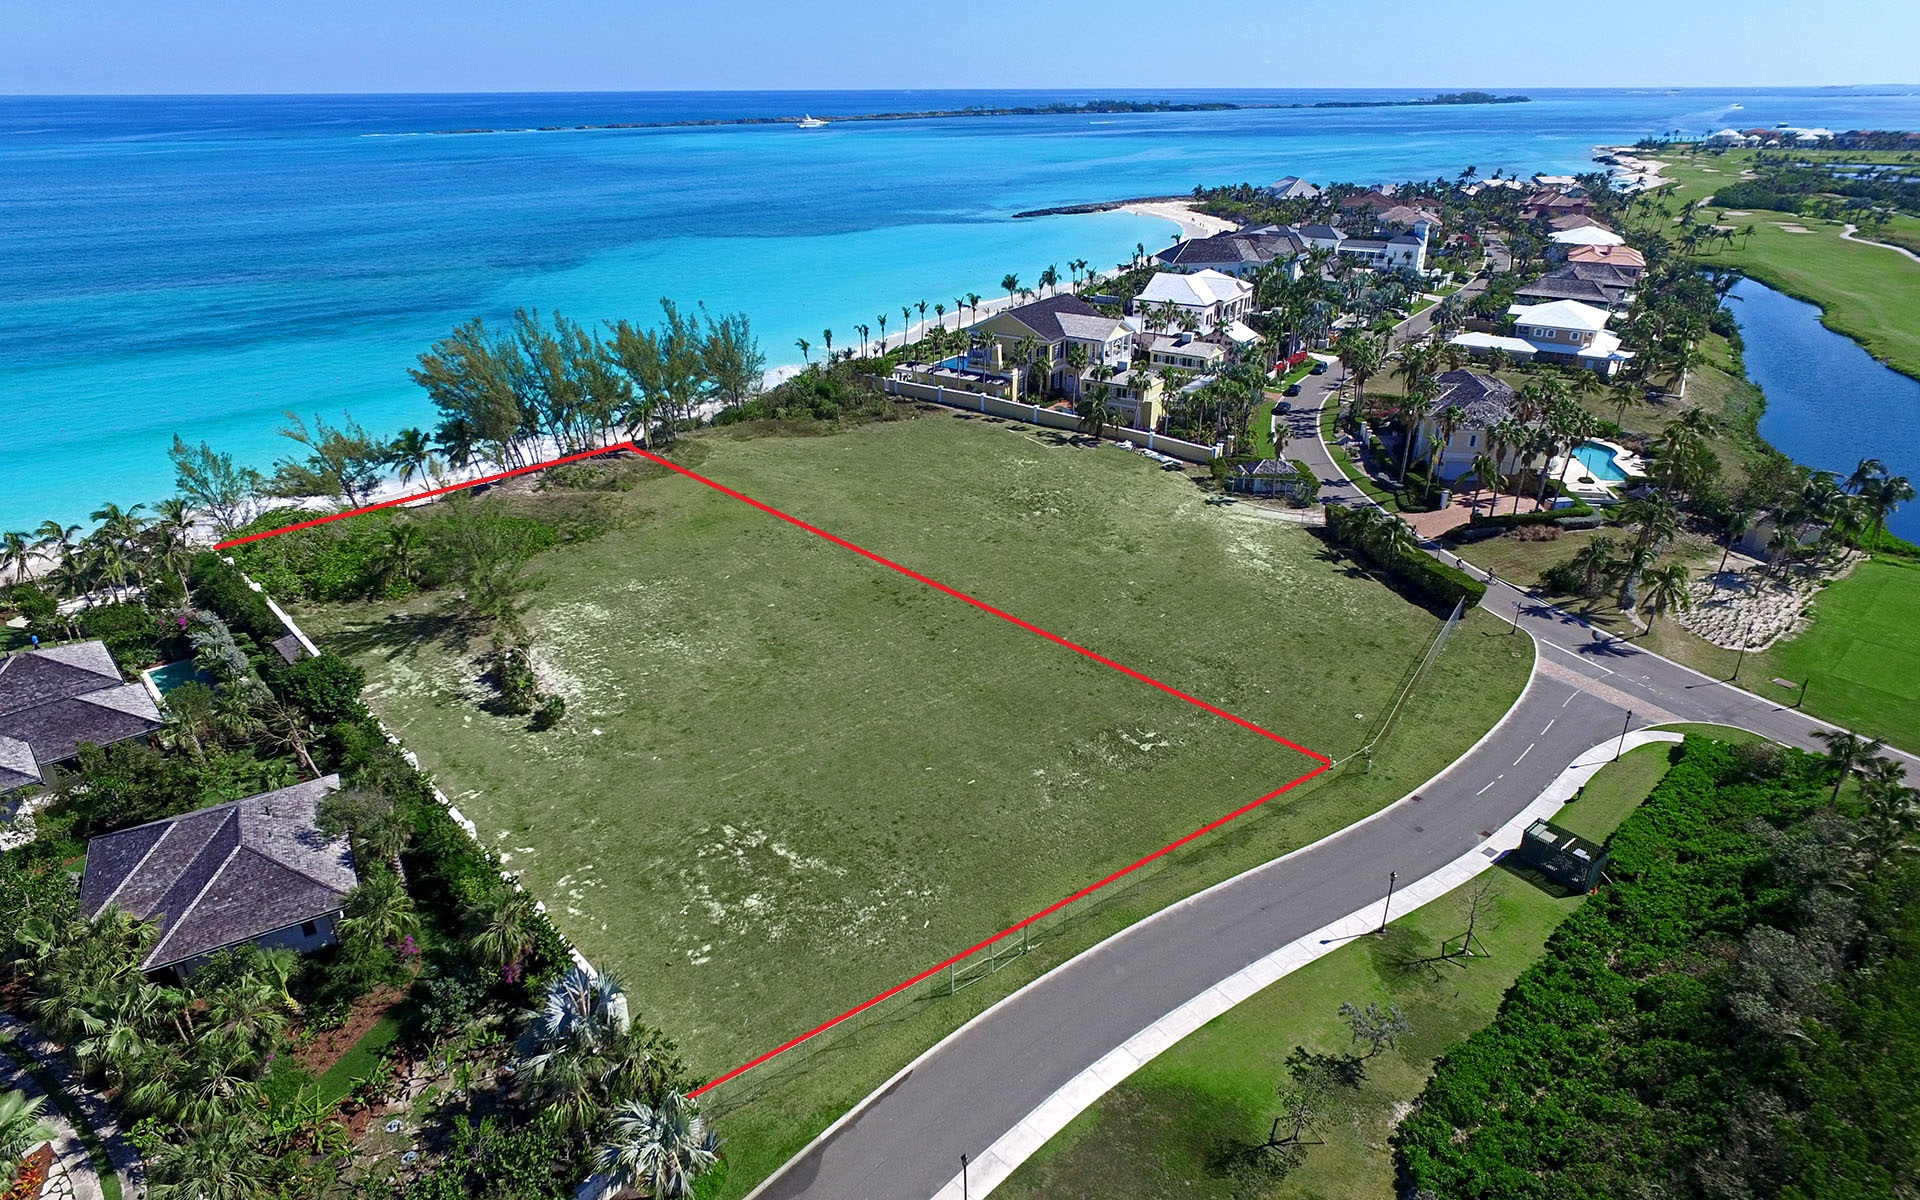 Terre / Lot de terrain pour l Vente à Prime Beachfront Lot in Ocean Club Estates - MLS 29629 Nassau New Providence And Vicinity